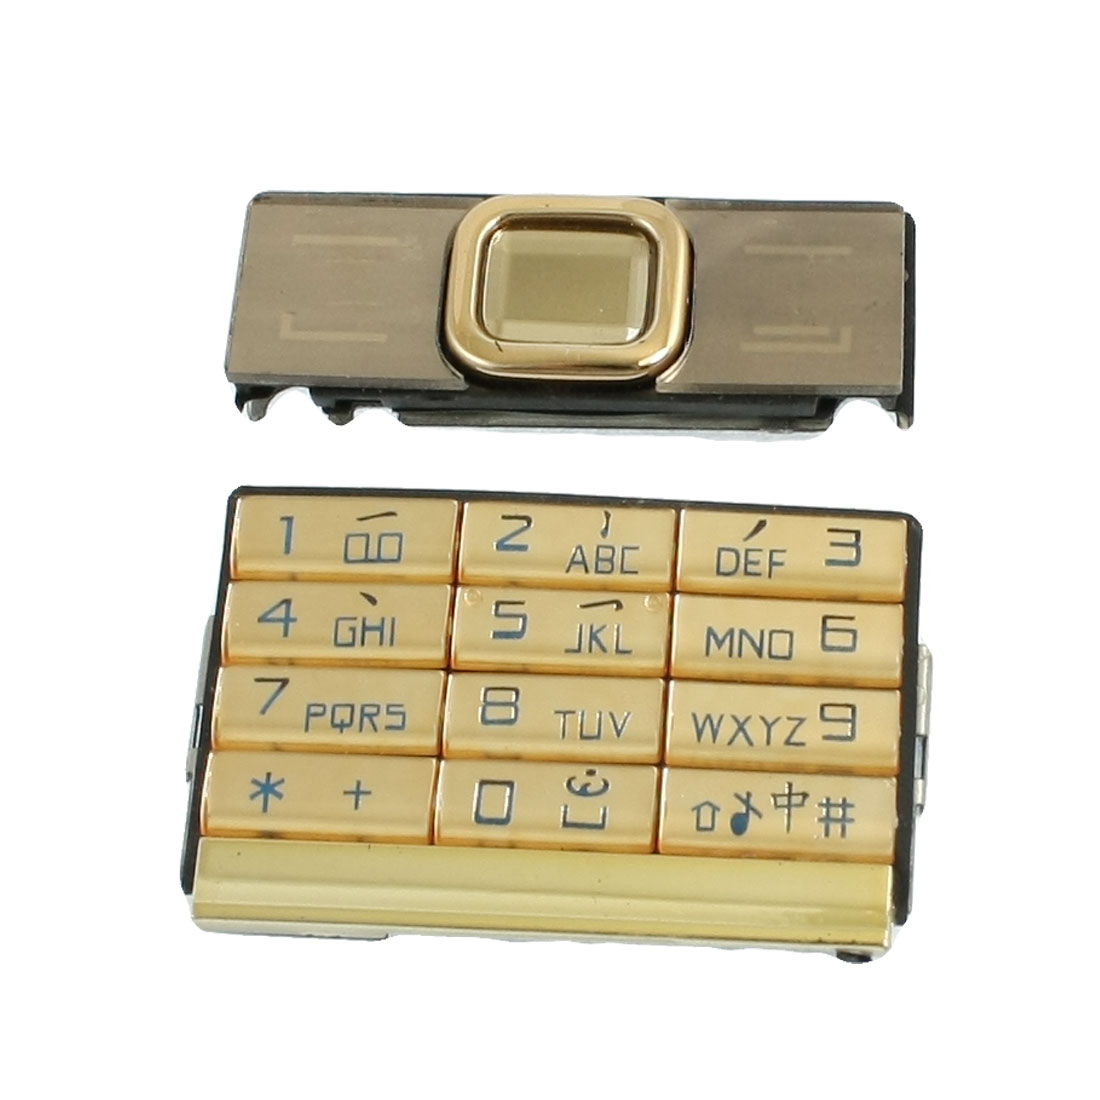 Repair Parts Keypad Keyboard Button Gold Tone for Nokia 8900